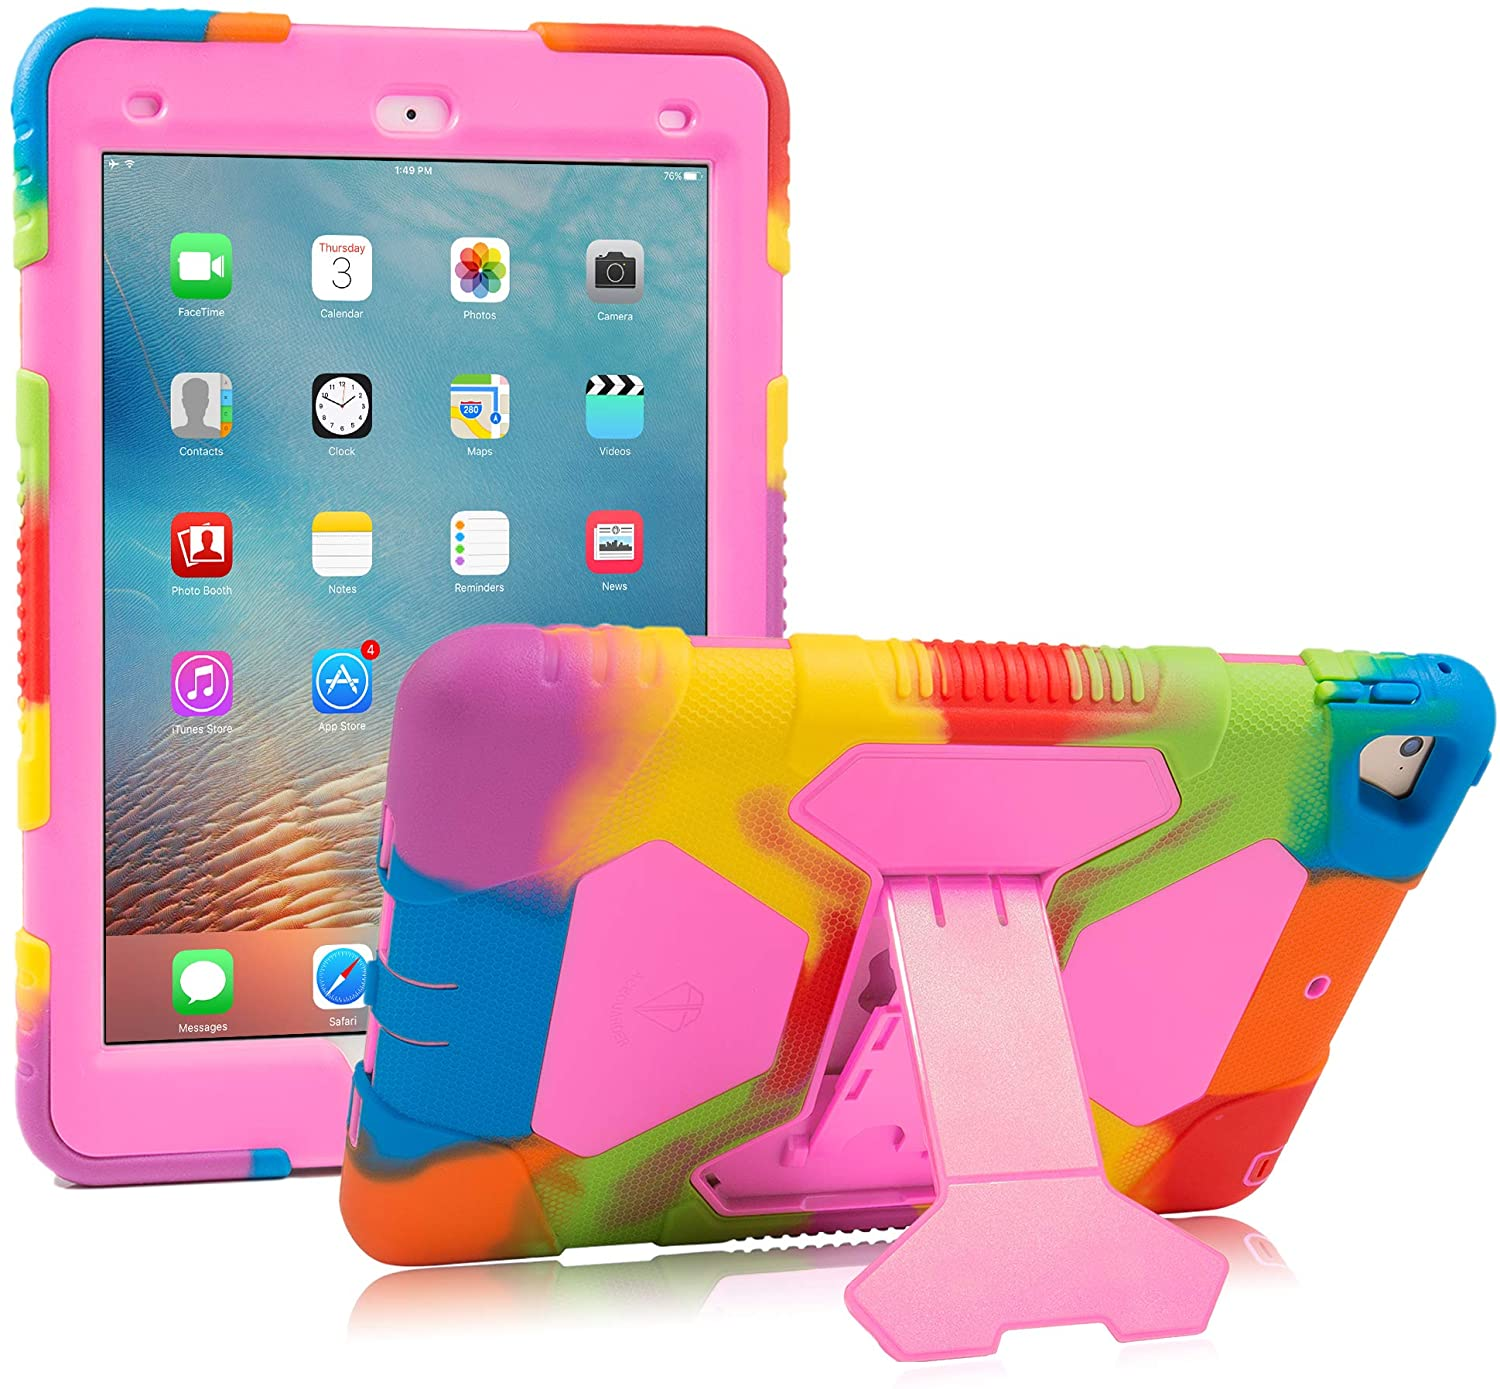 iPad 9.7 2018/2017, iPad Air 2, iPad Pro 9.7 Case for Kids Full Body Protective Shockproof Cover with Adjustable Kickstand for iPad 9.7 5th / 6th Generation (Rainbow/Pink)